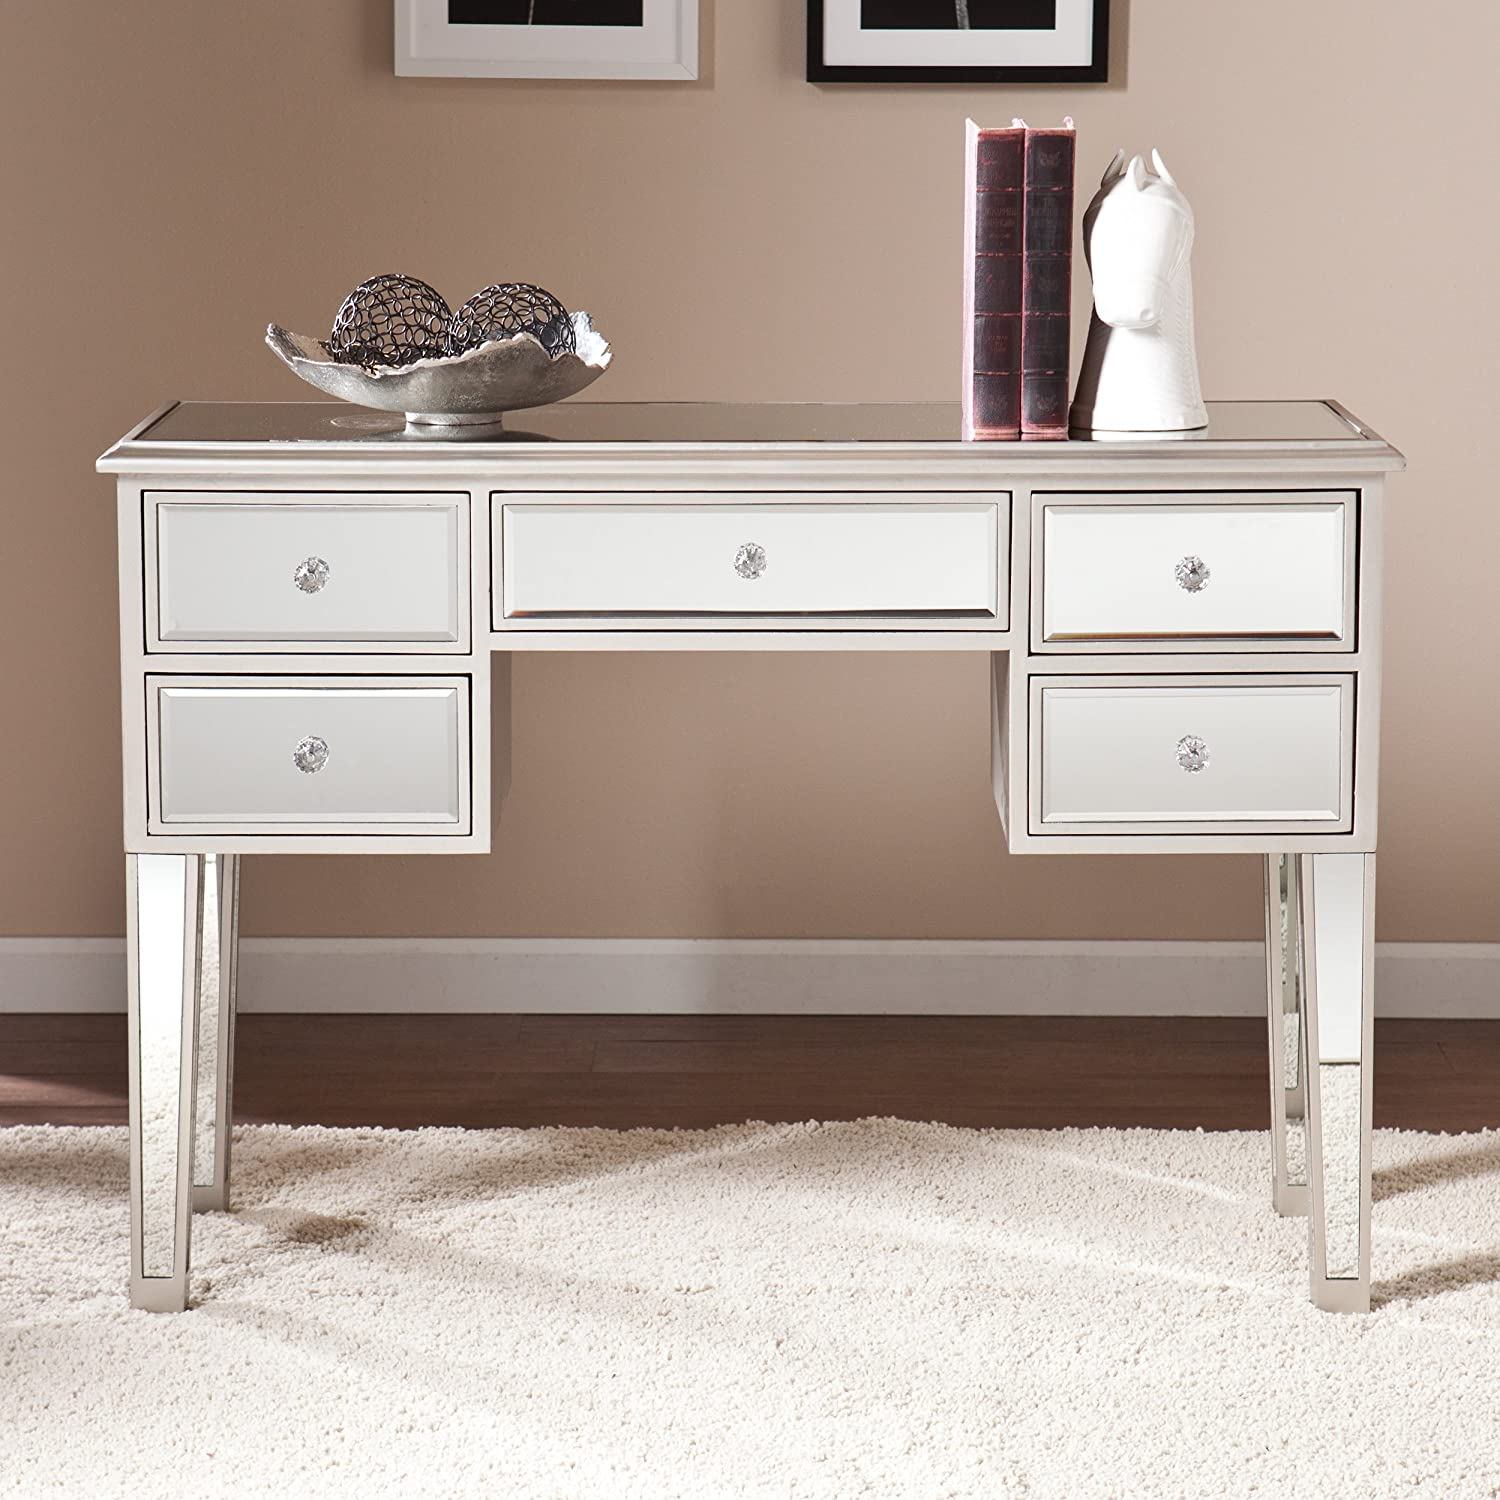 Amazon.com: Southern Enterprises Mirage Mirrored Console Table In Silver:  Kitchen U0026 Dining